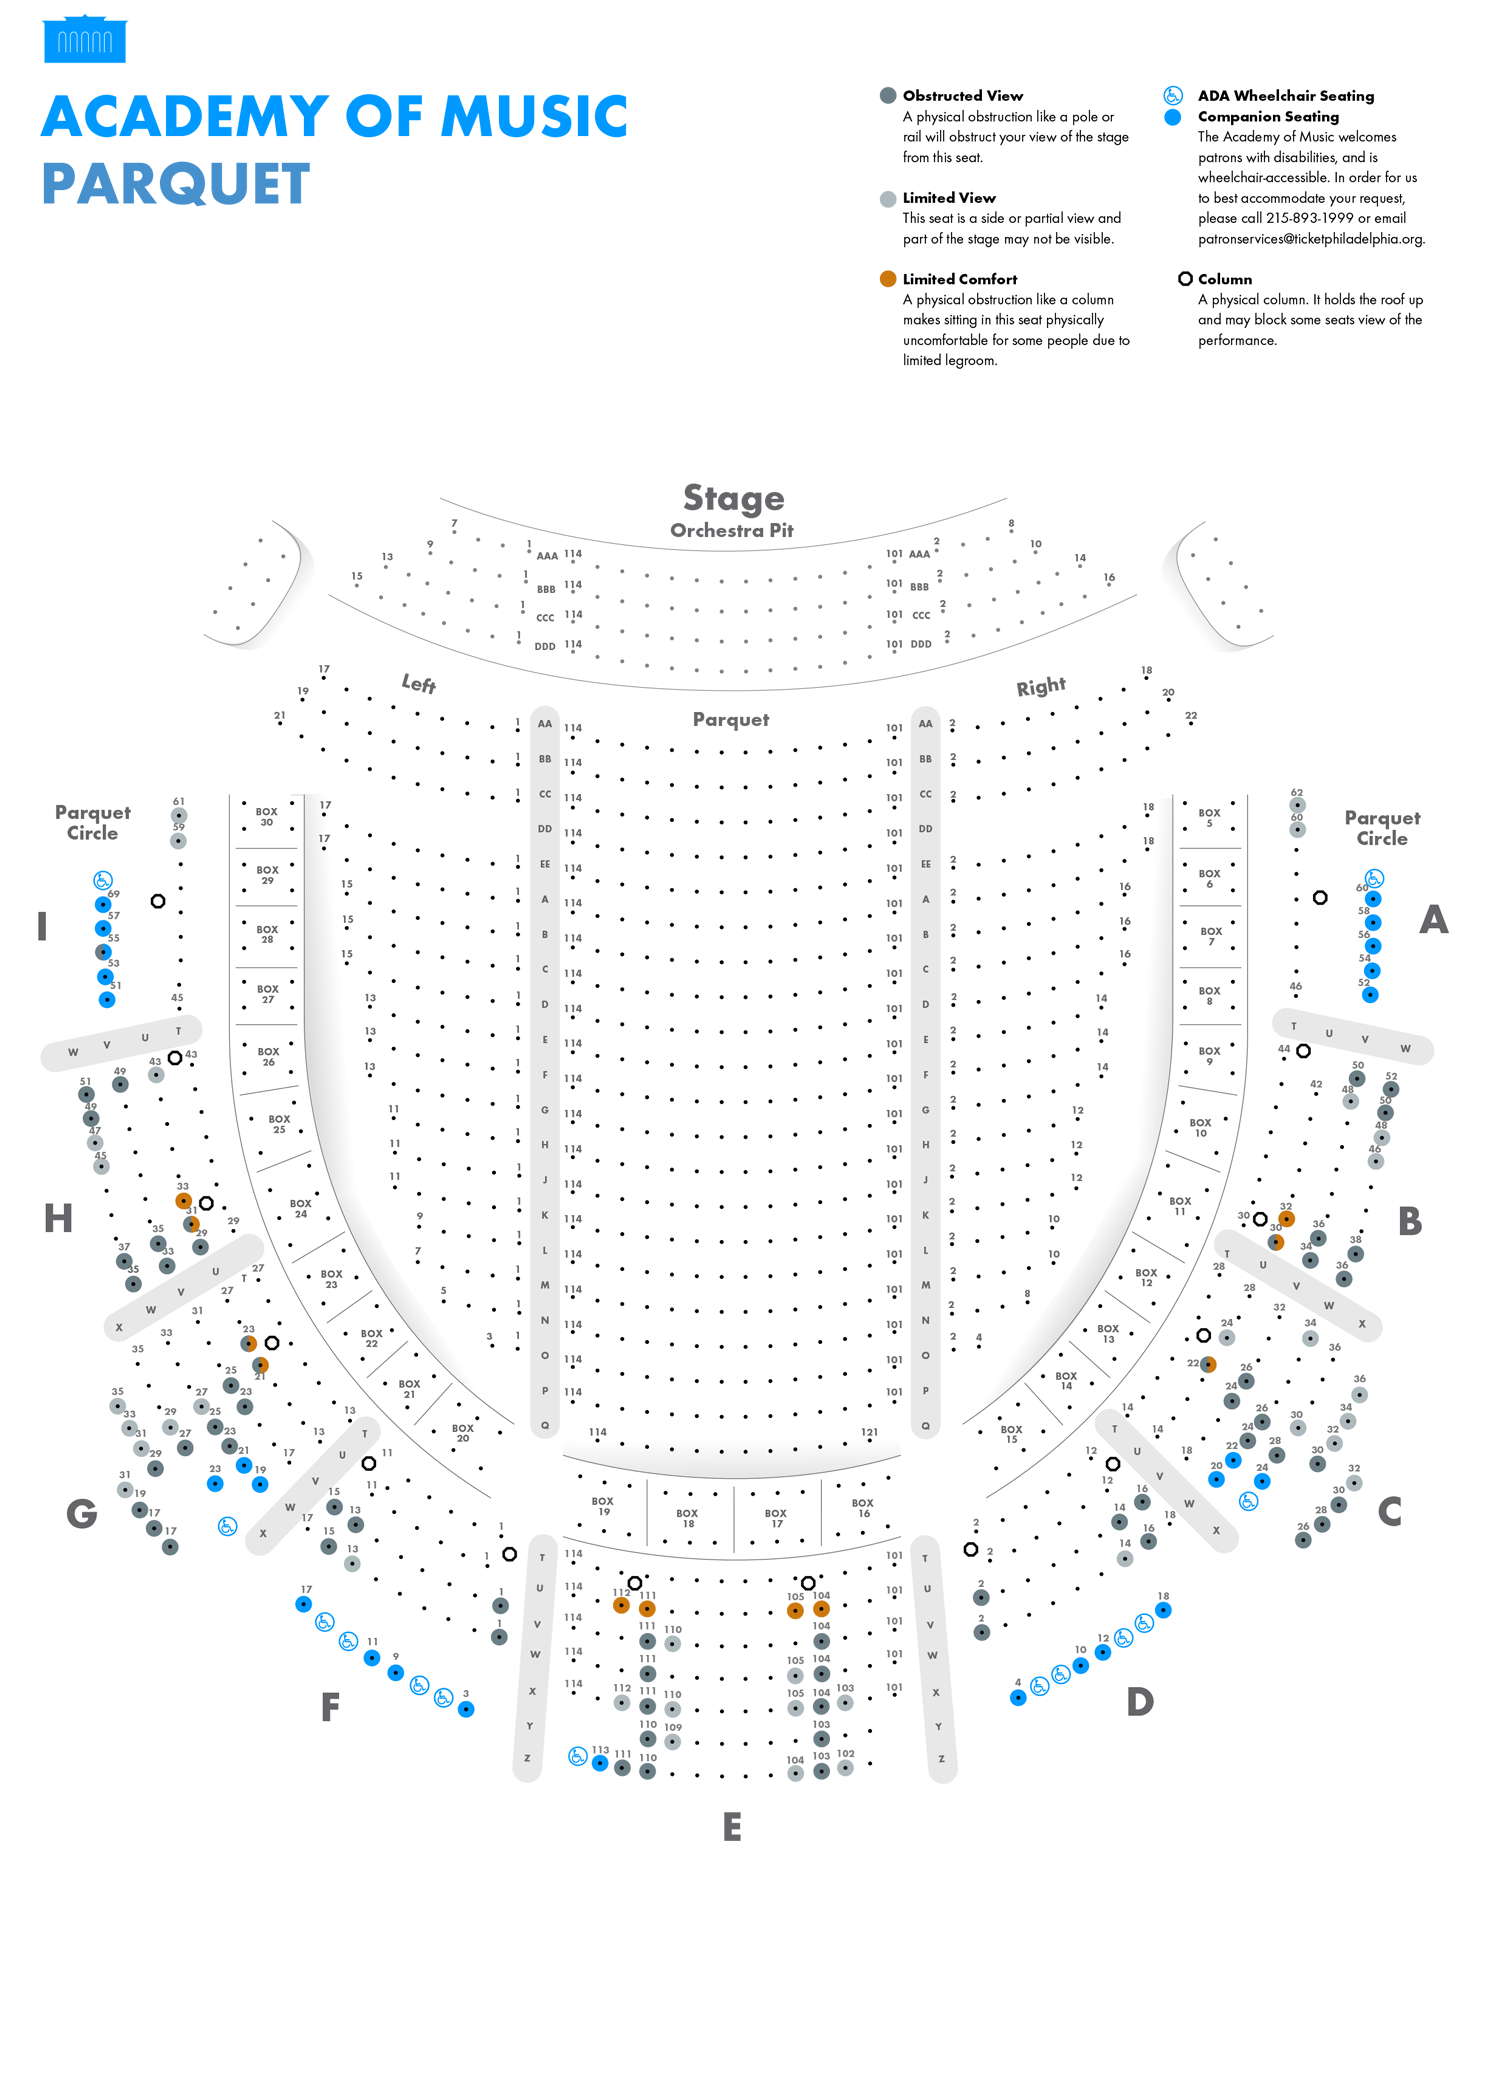 Academy of Music - Parquet - Seating Chart